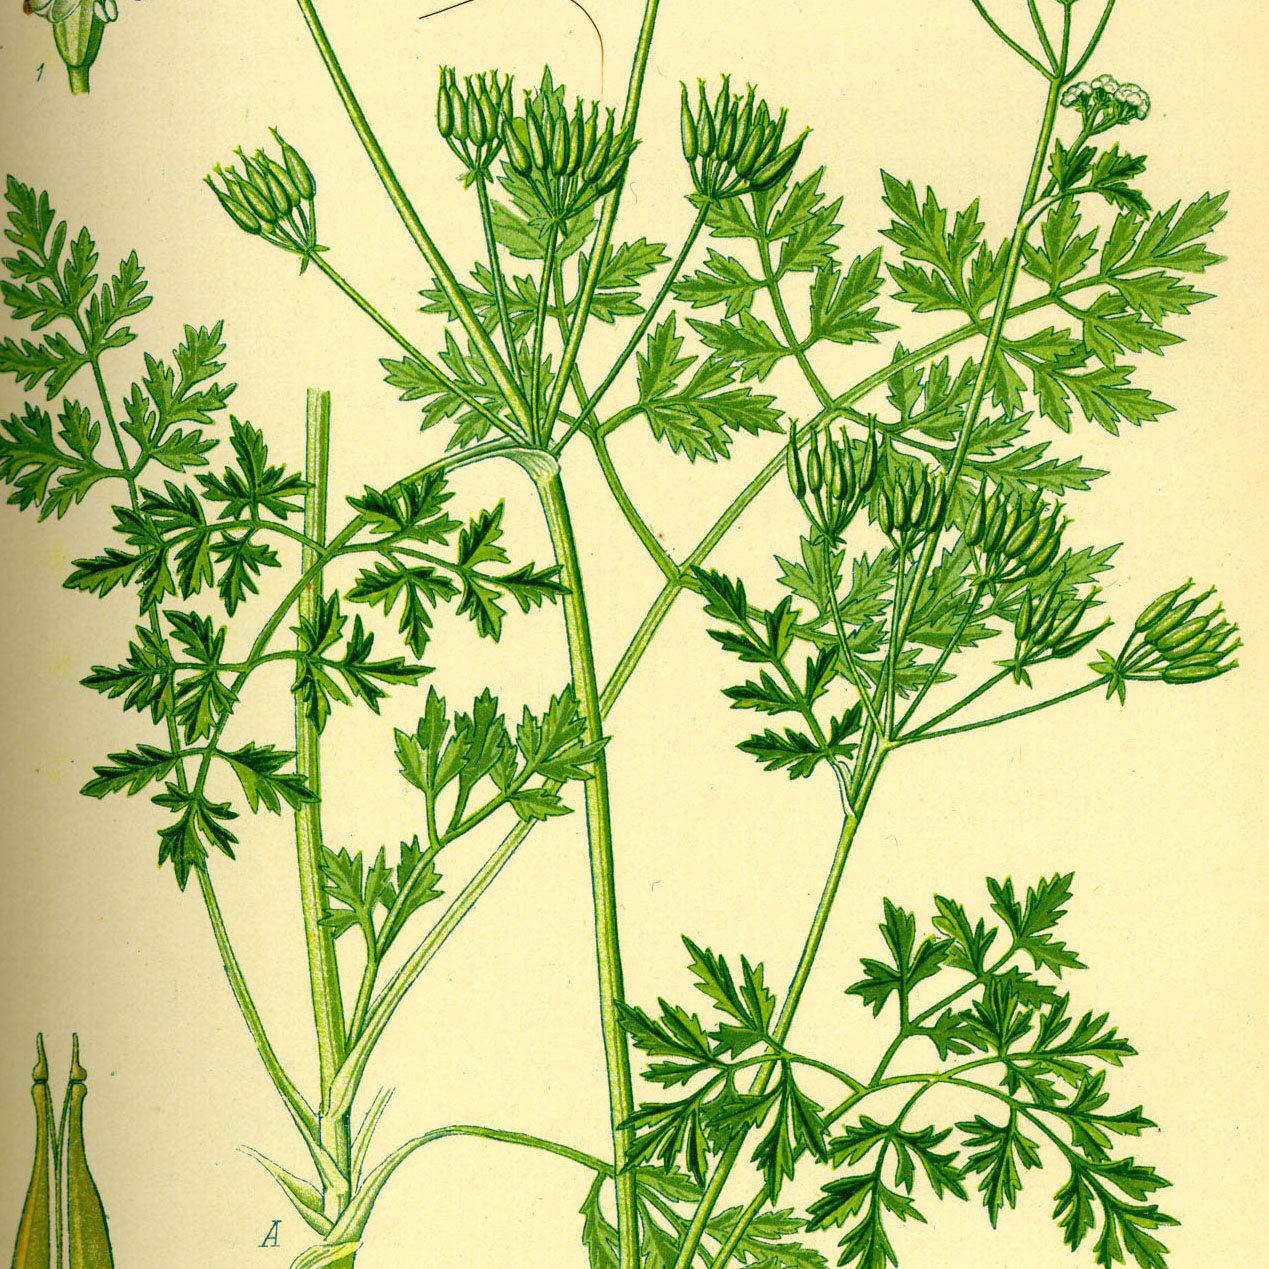 Chervil leaves rubbed - 1000g